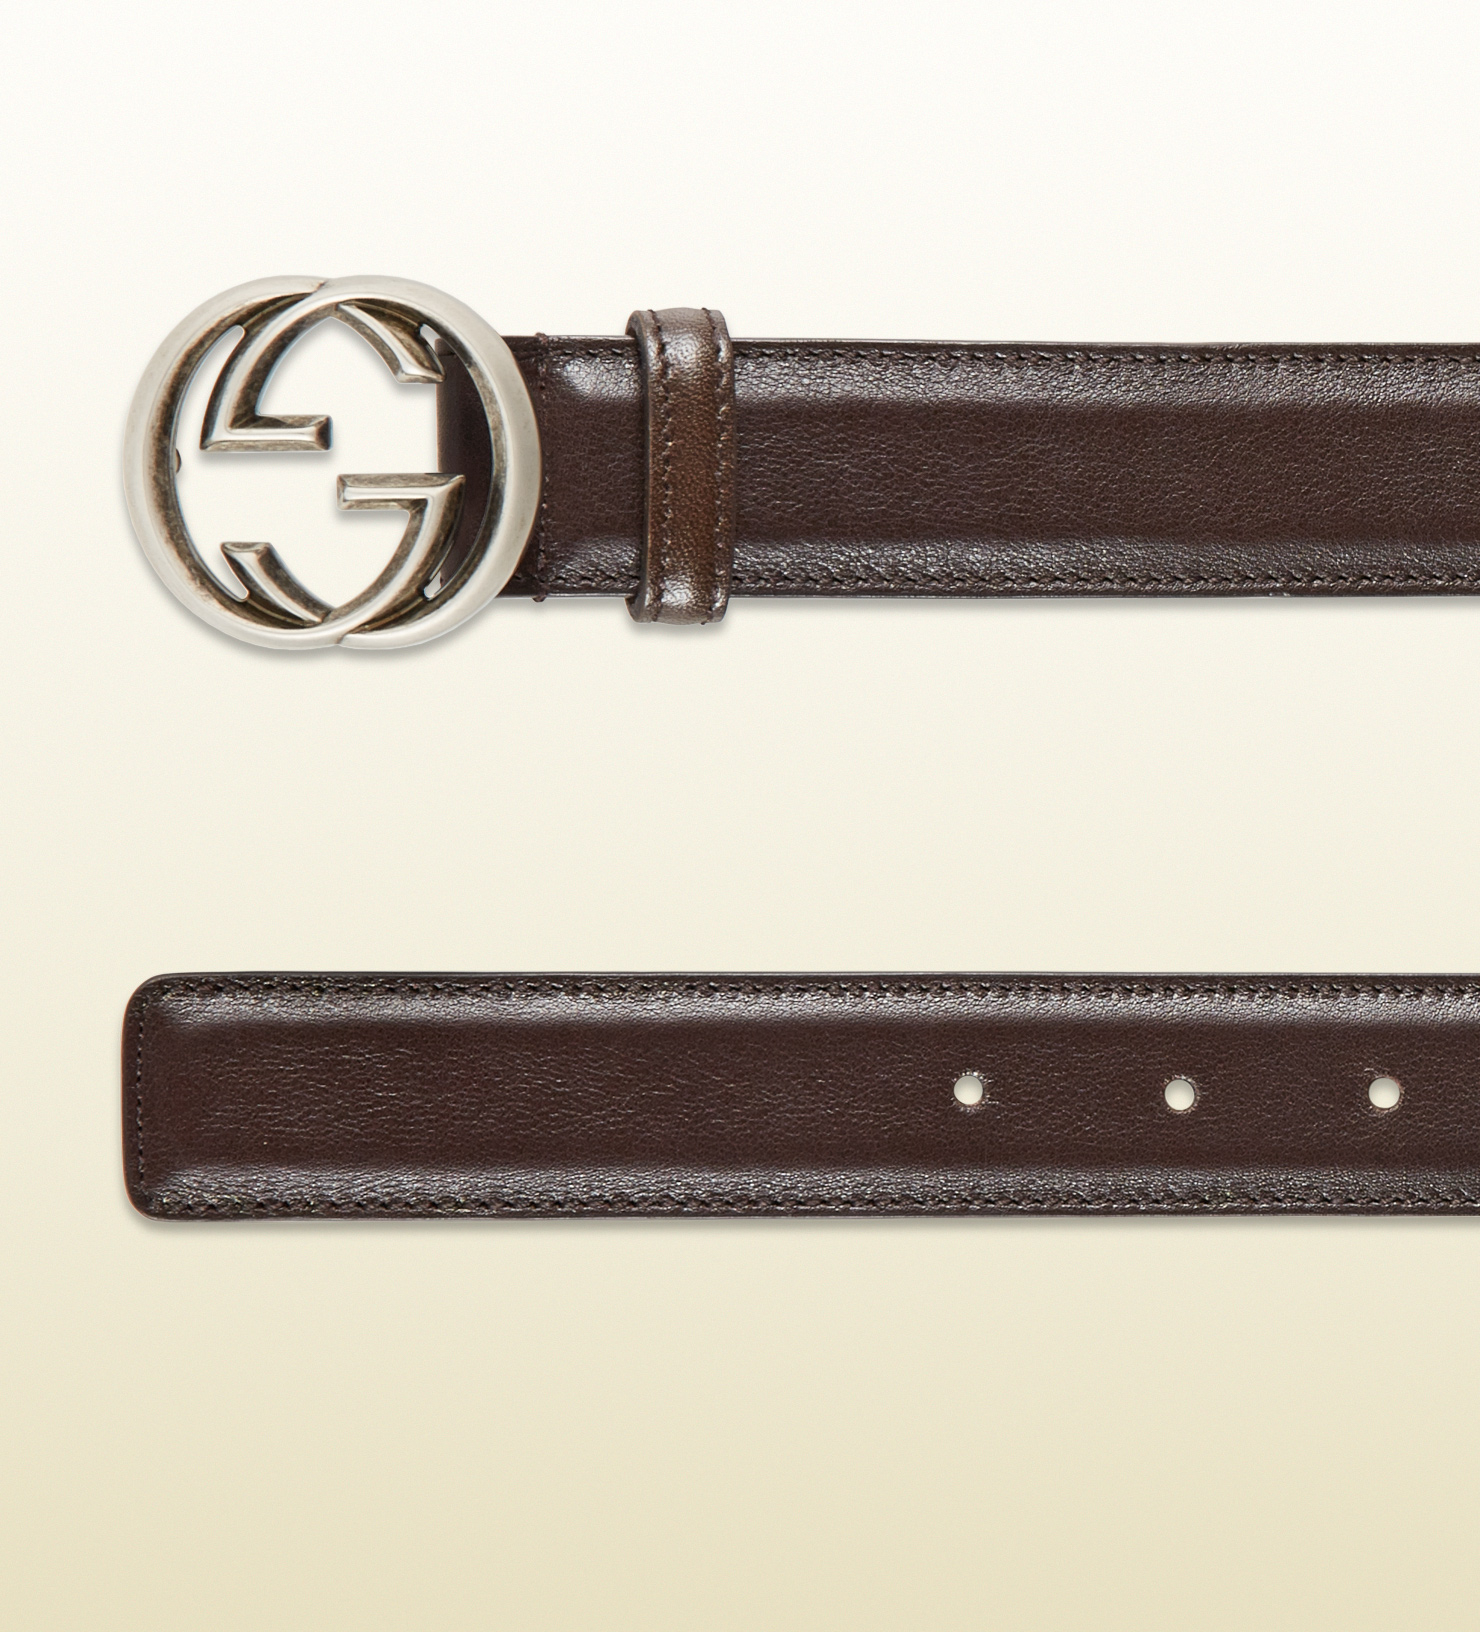 Lyst - Gucci Leather Belt With Interlocking G Buckle in ...